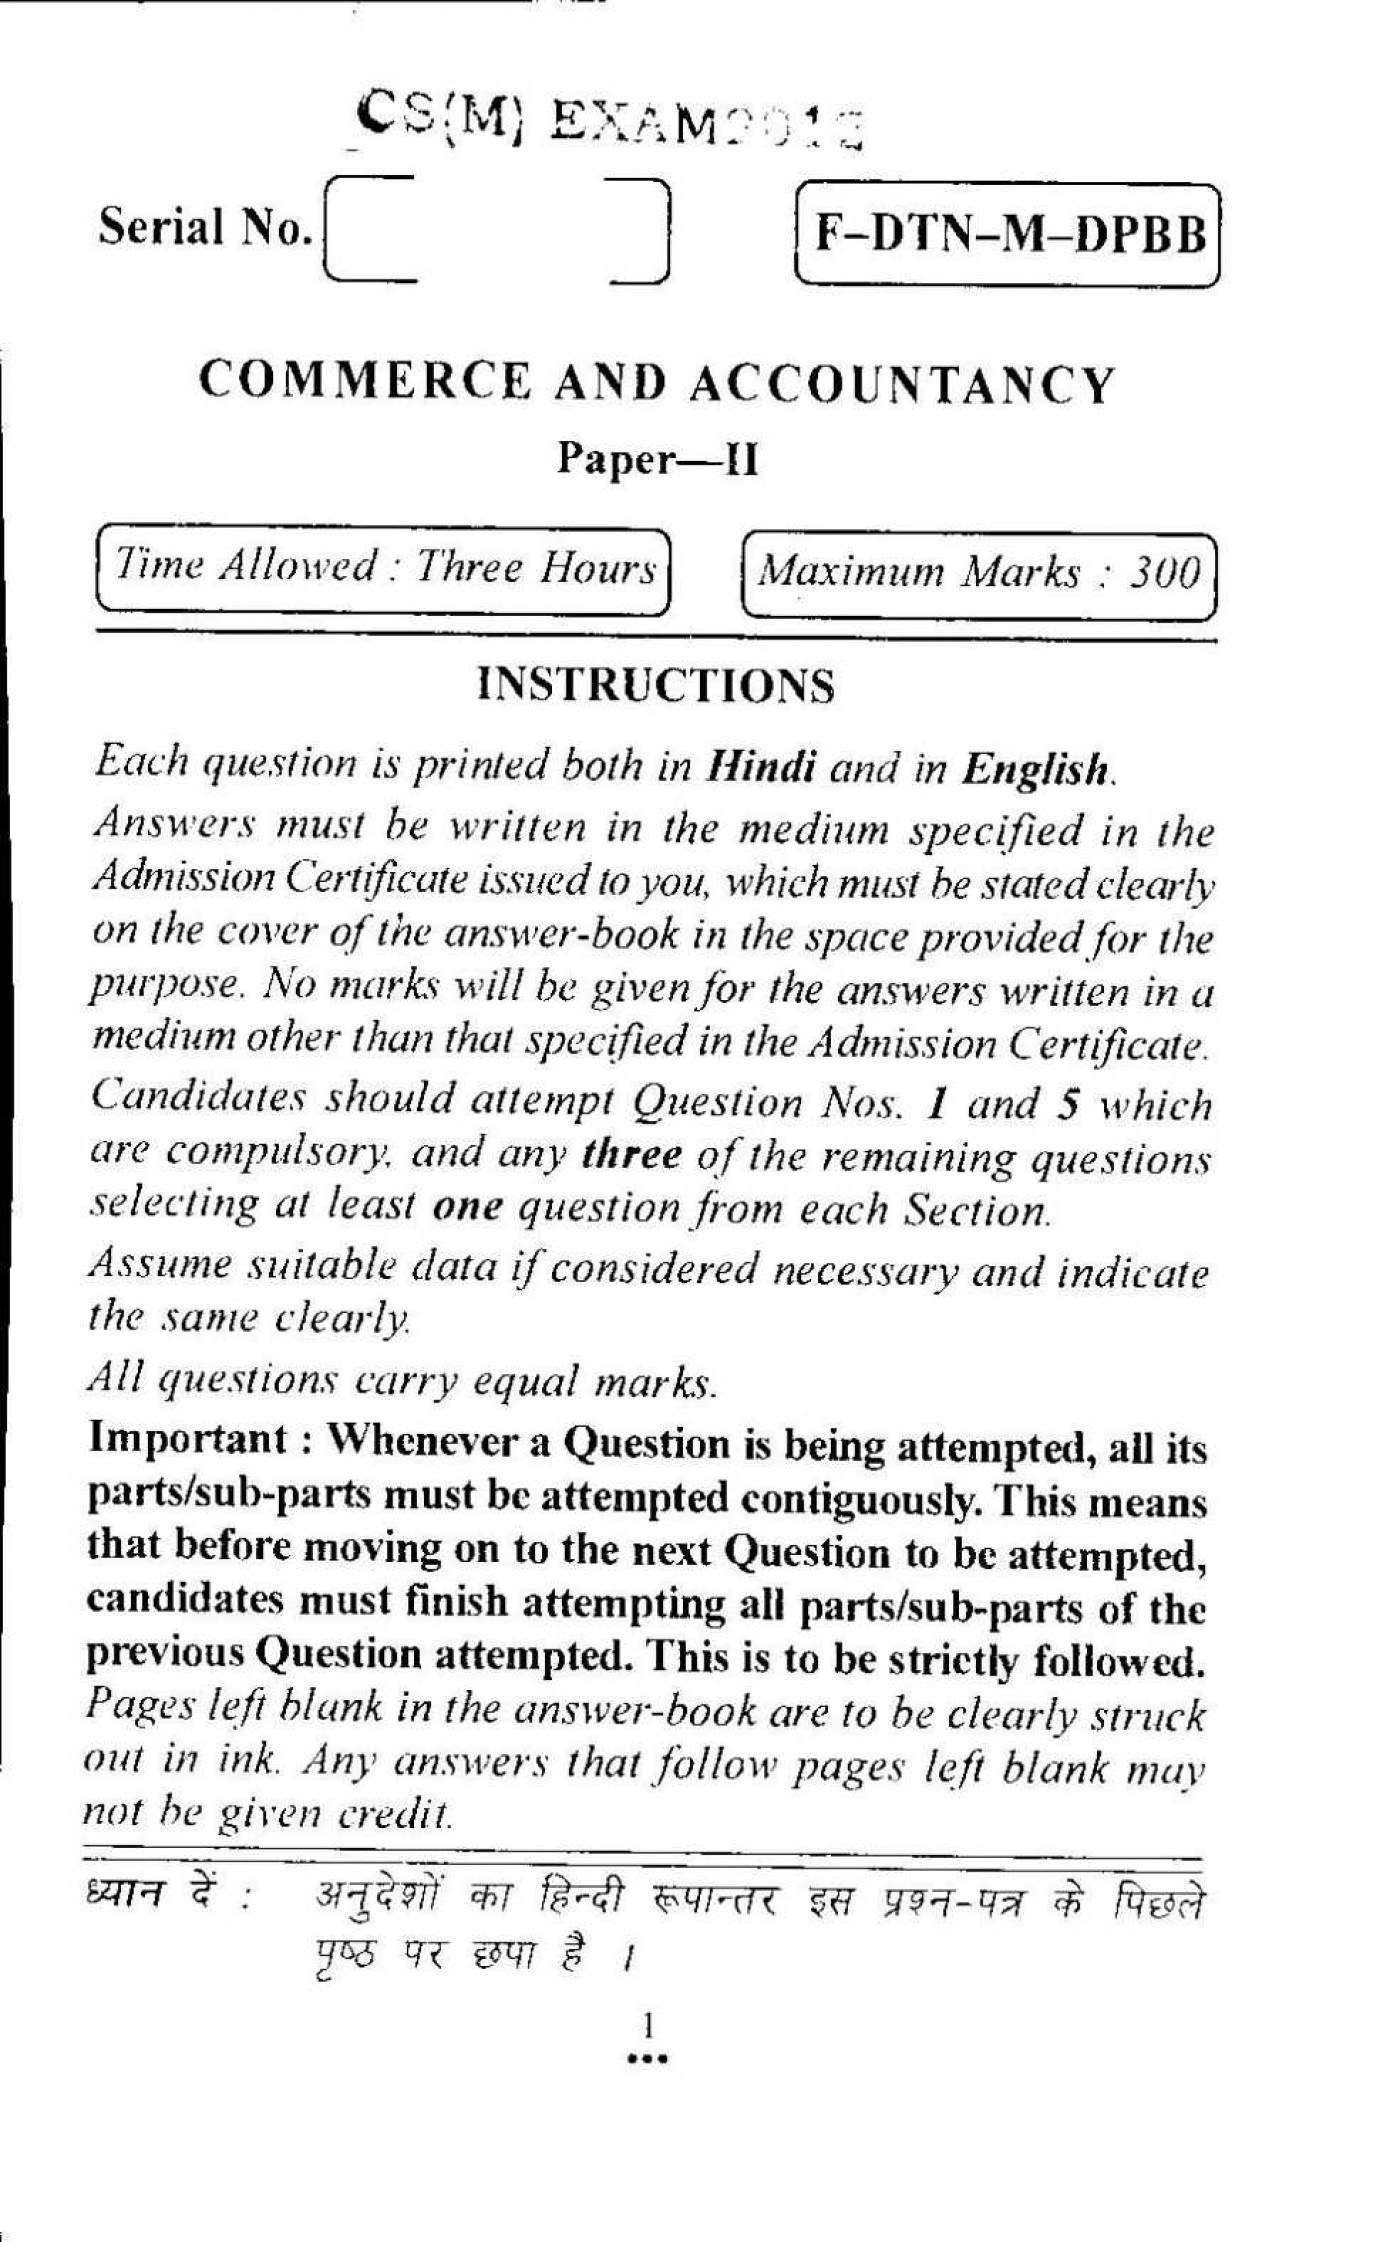 011 Civil Services Examination Commerce And Accountancy Paper Ii Previous Years Que Essay Example Marvelous Racism Tkam Pdf In Othello Free 1400